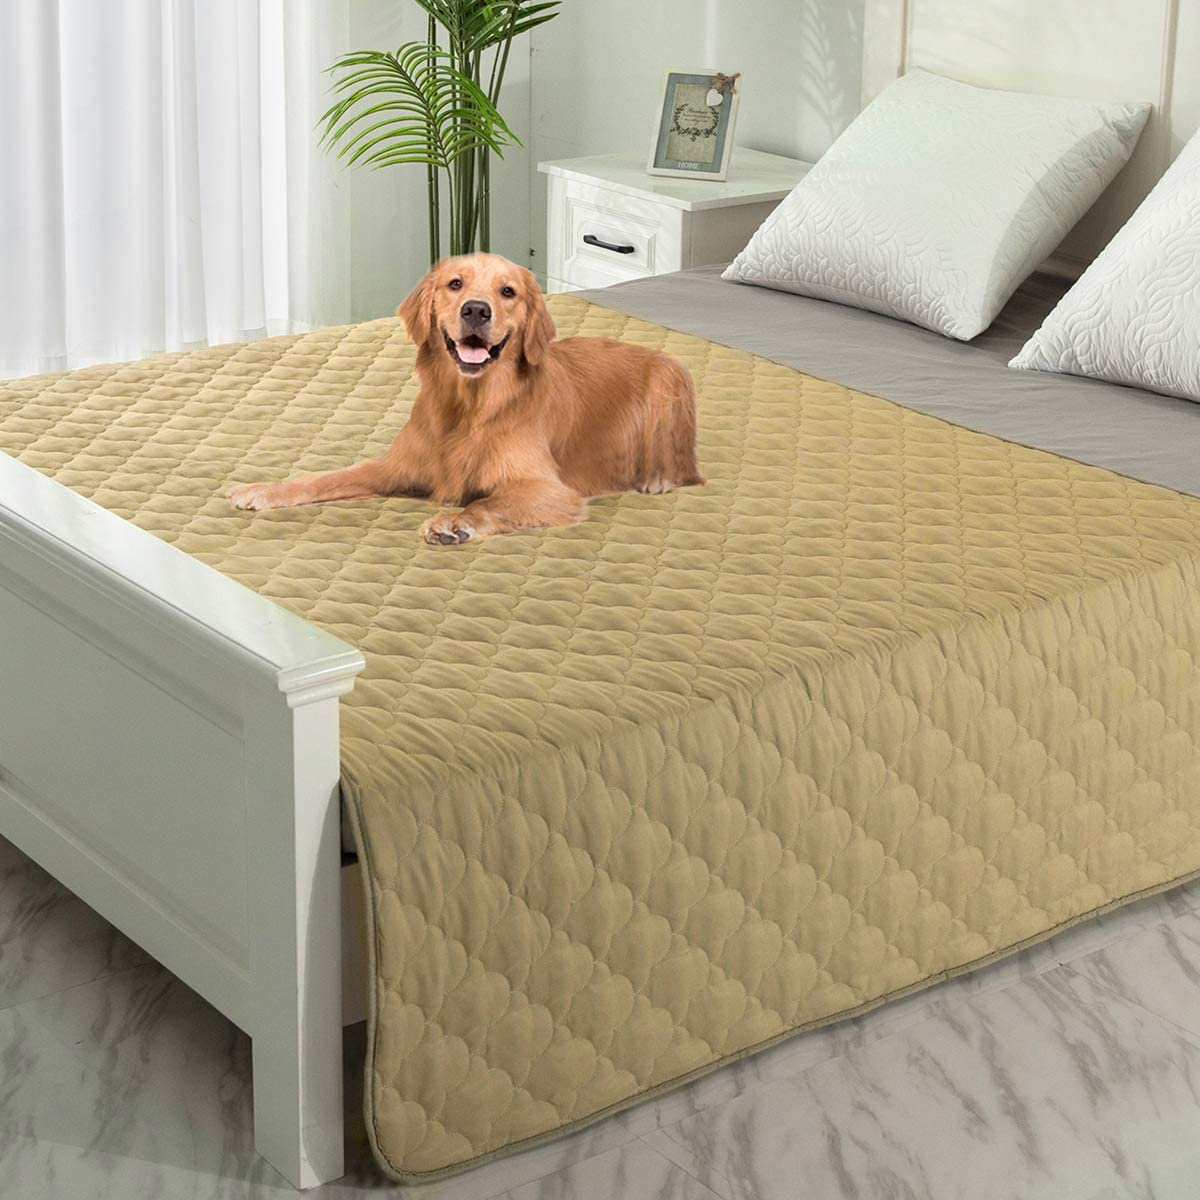 SPXTEX Dog Bed Covers Rugs Pads Washable Pet Fashion Max 54% OFF Pee Puppy